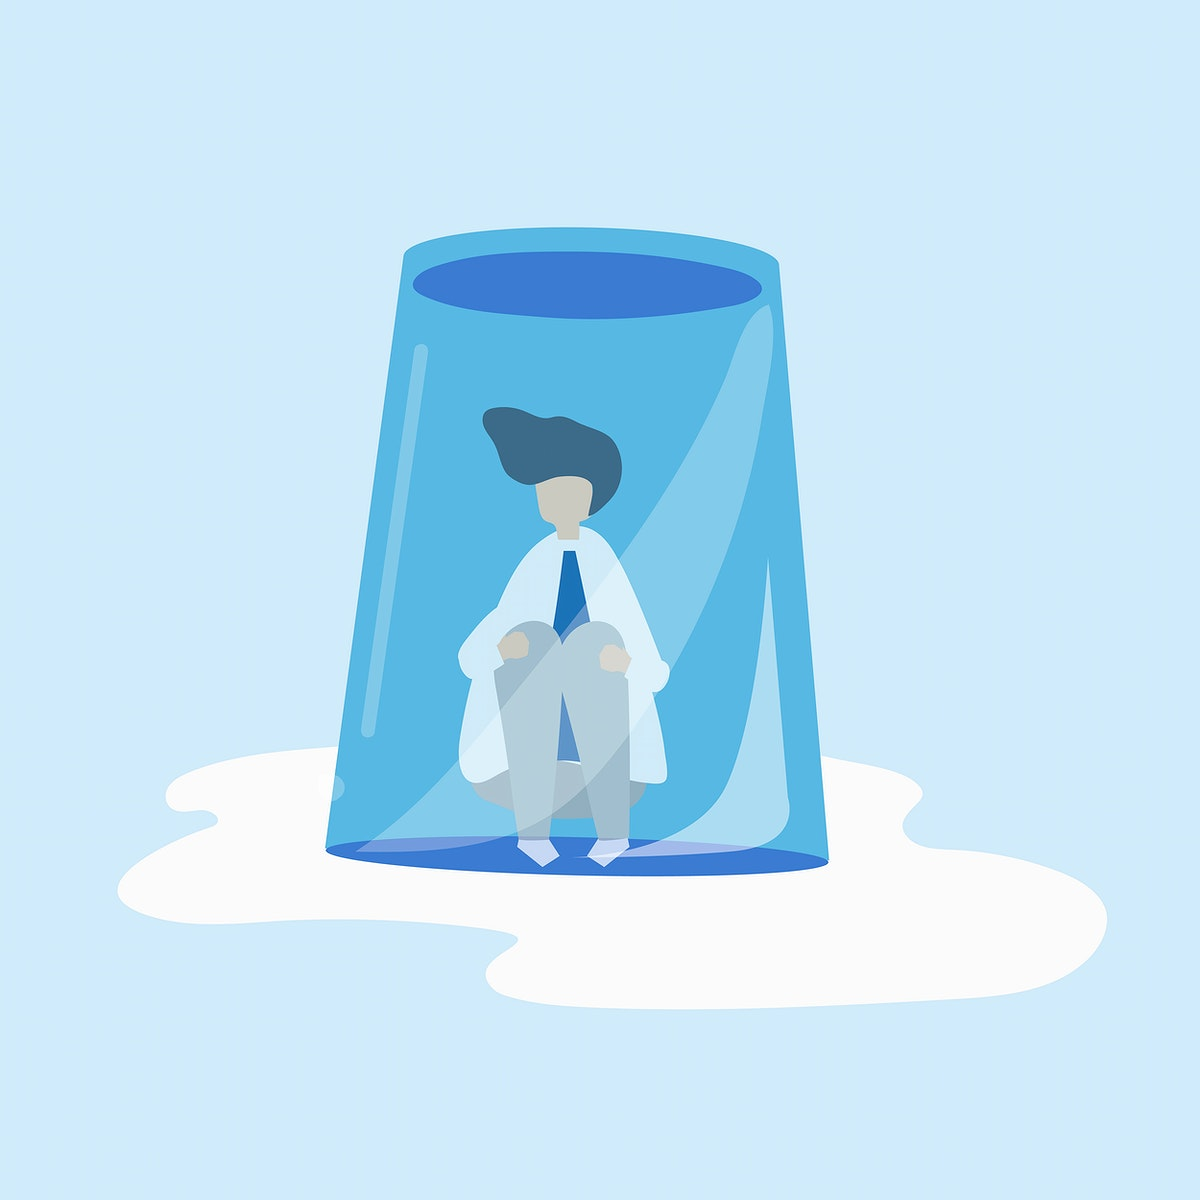 Character of a businessman feeling small and trapped illustration